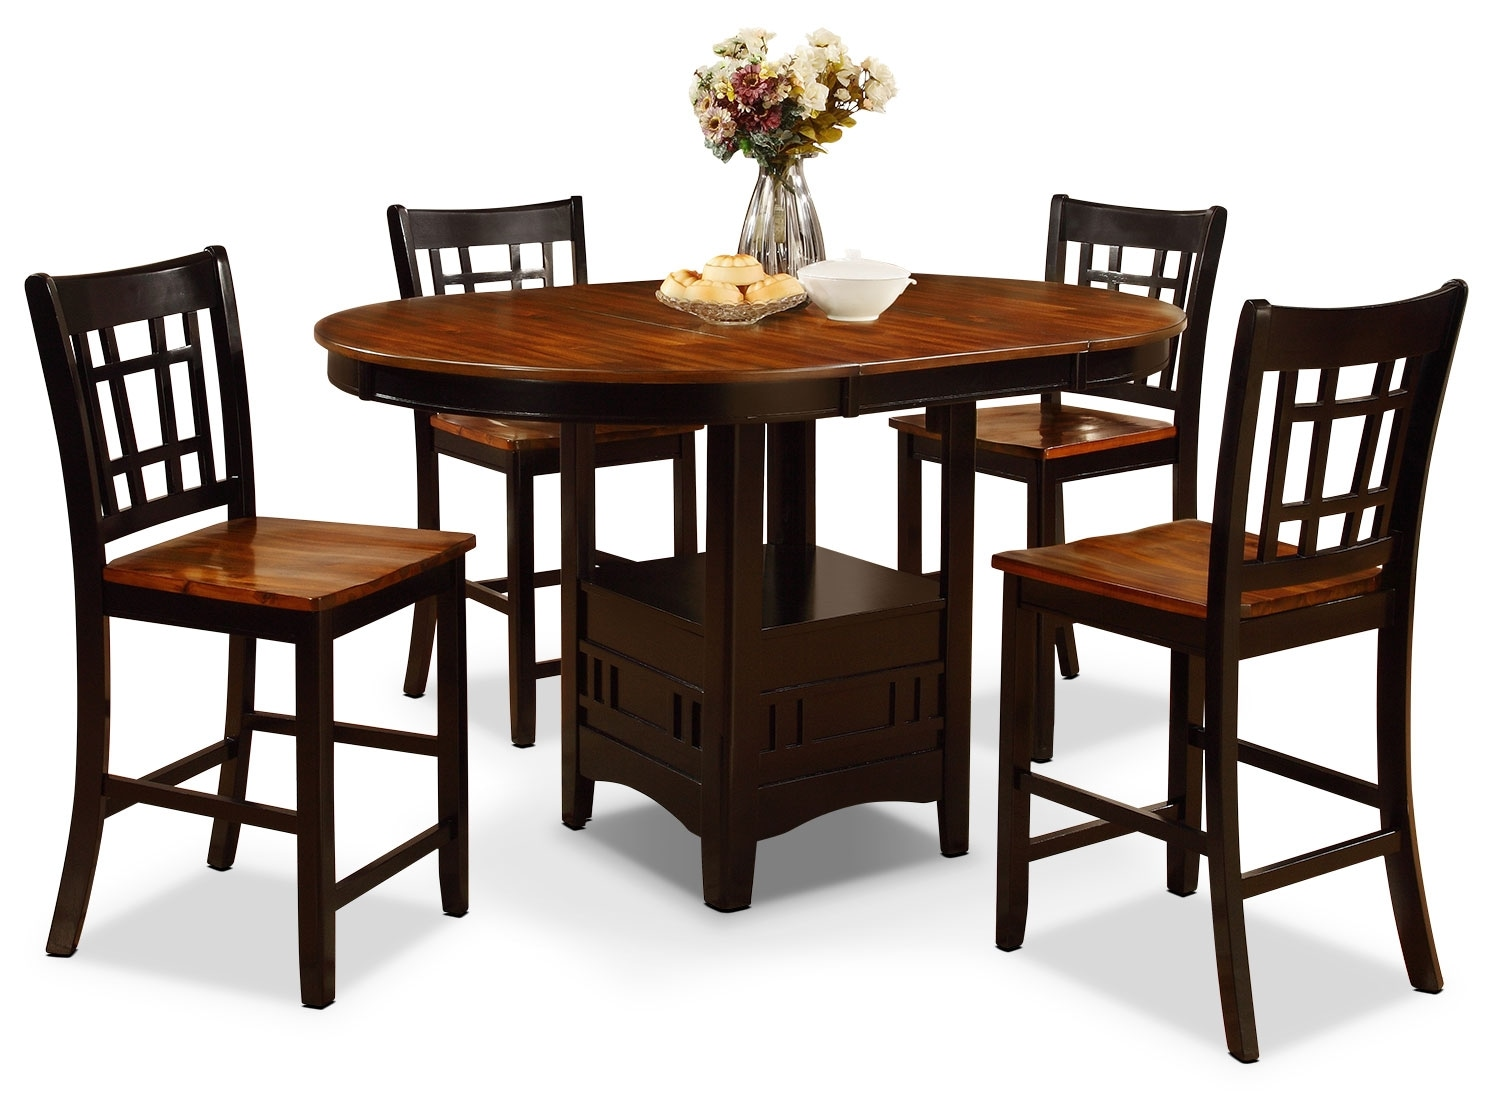 Dining Room Furniture - Dara 5-Piece Counter-Height Dining Package